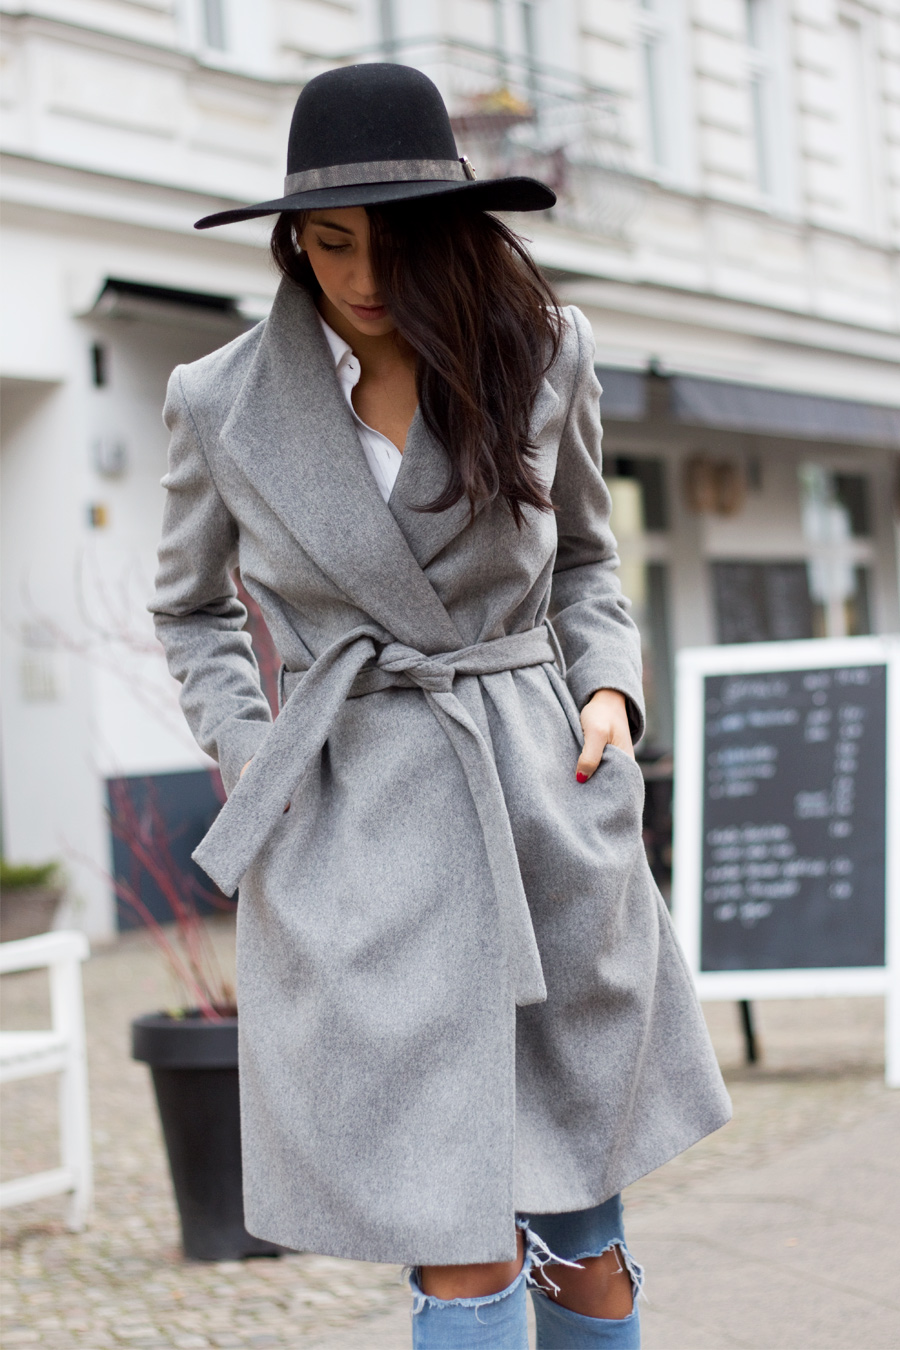 Autumn Has Arrived... So Has The Robe Coat Trend